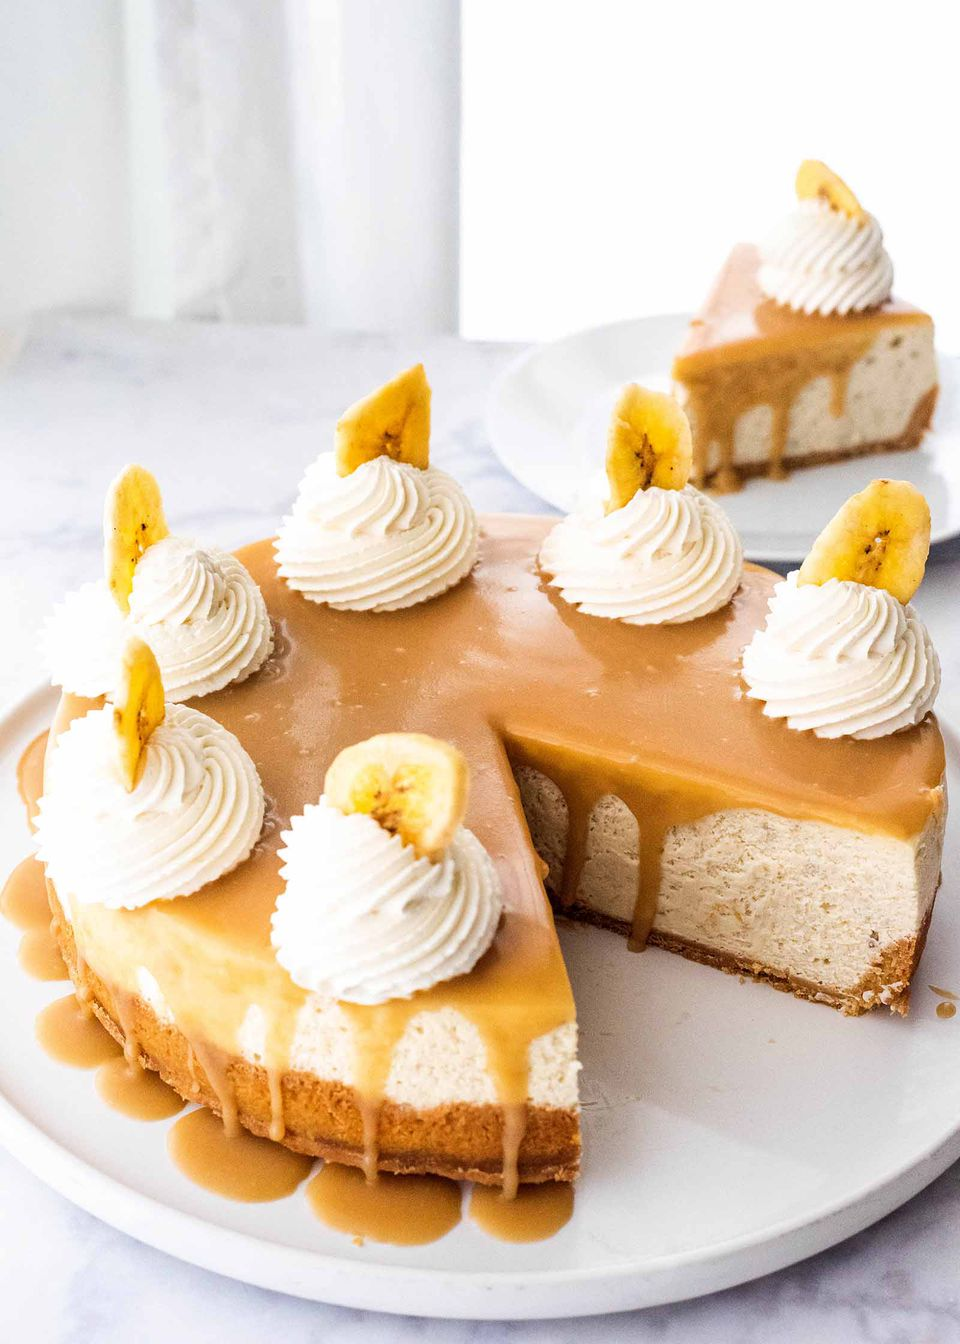 Baked Banoffee Cheesecake Pie pie with toffee sauce on platter